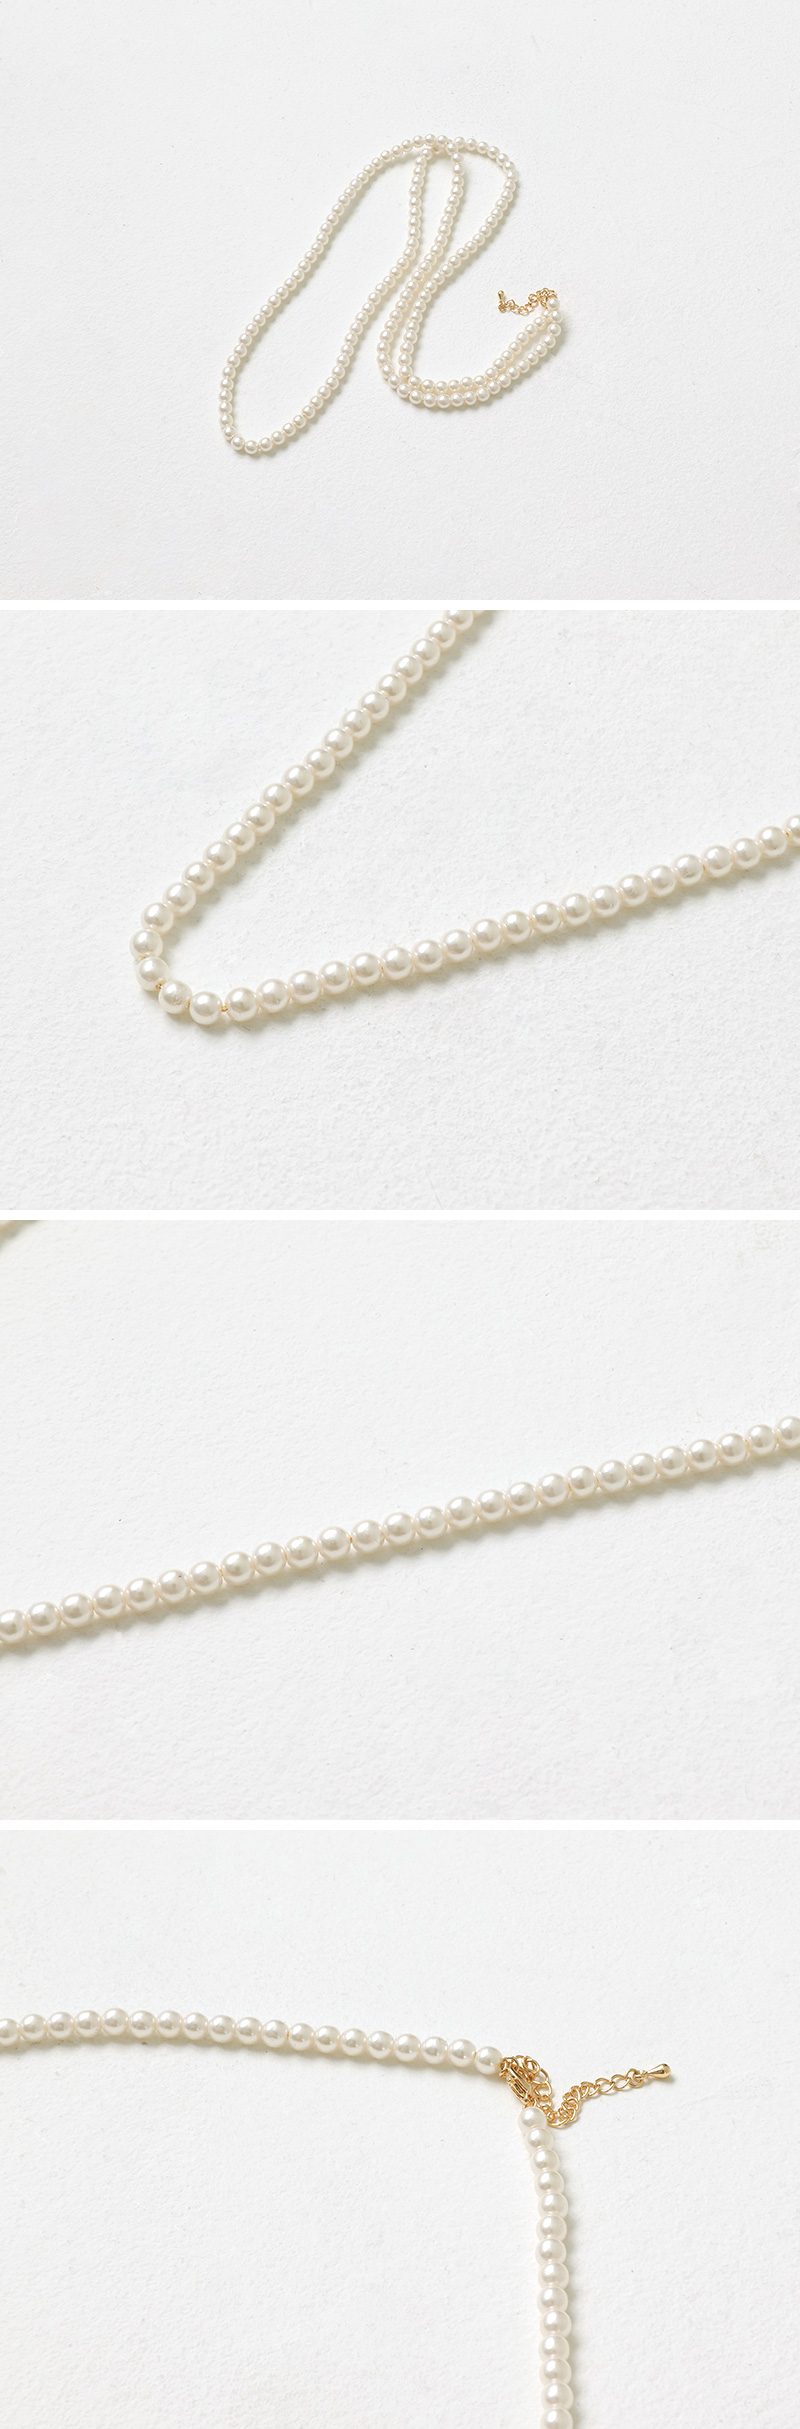 Hepburn Layered Pearl Necklace